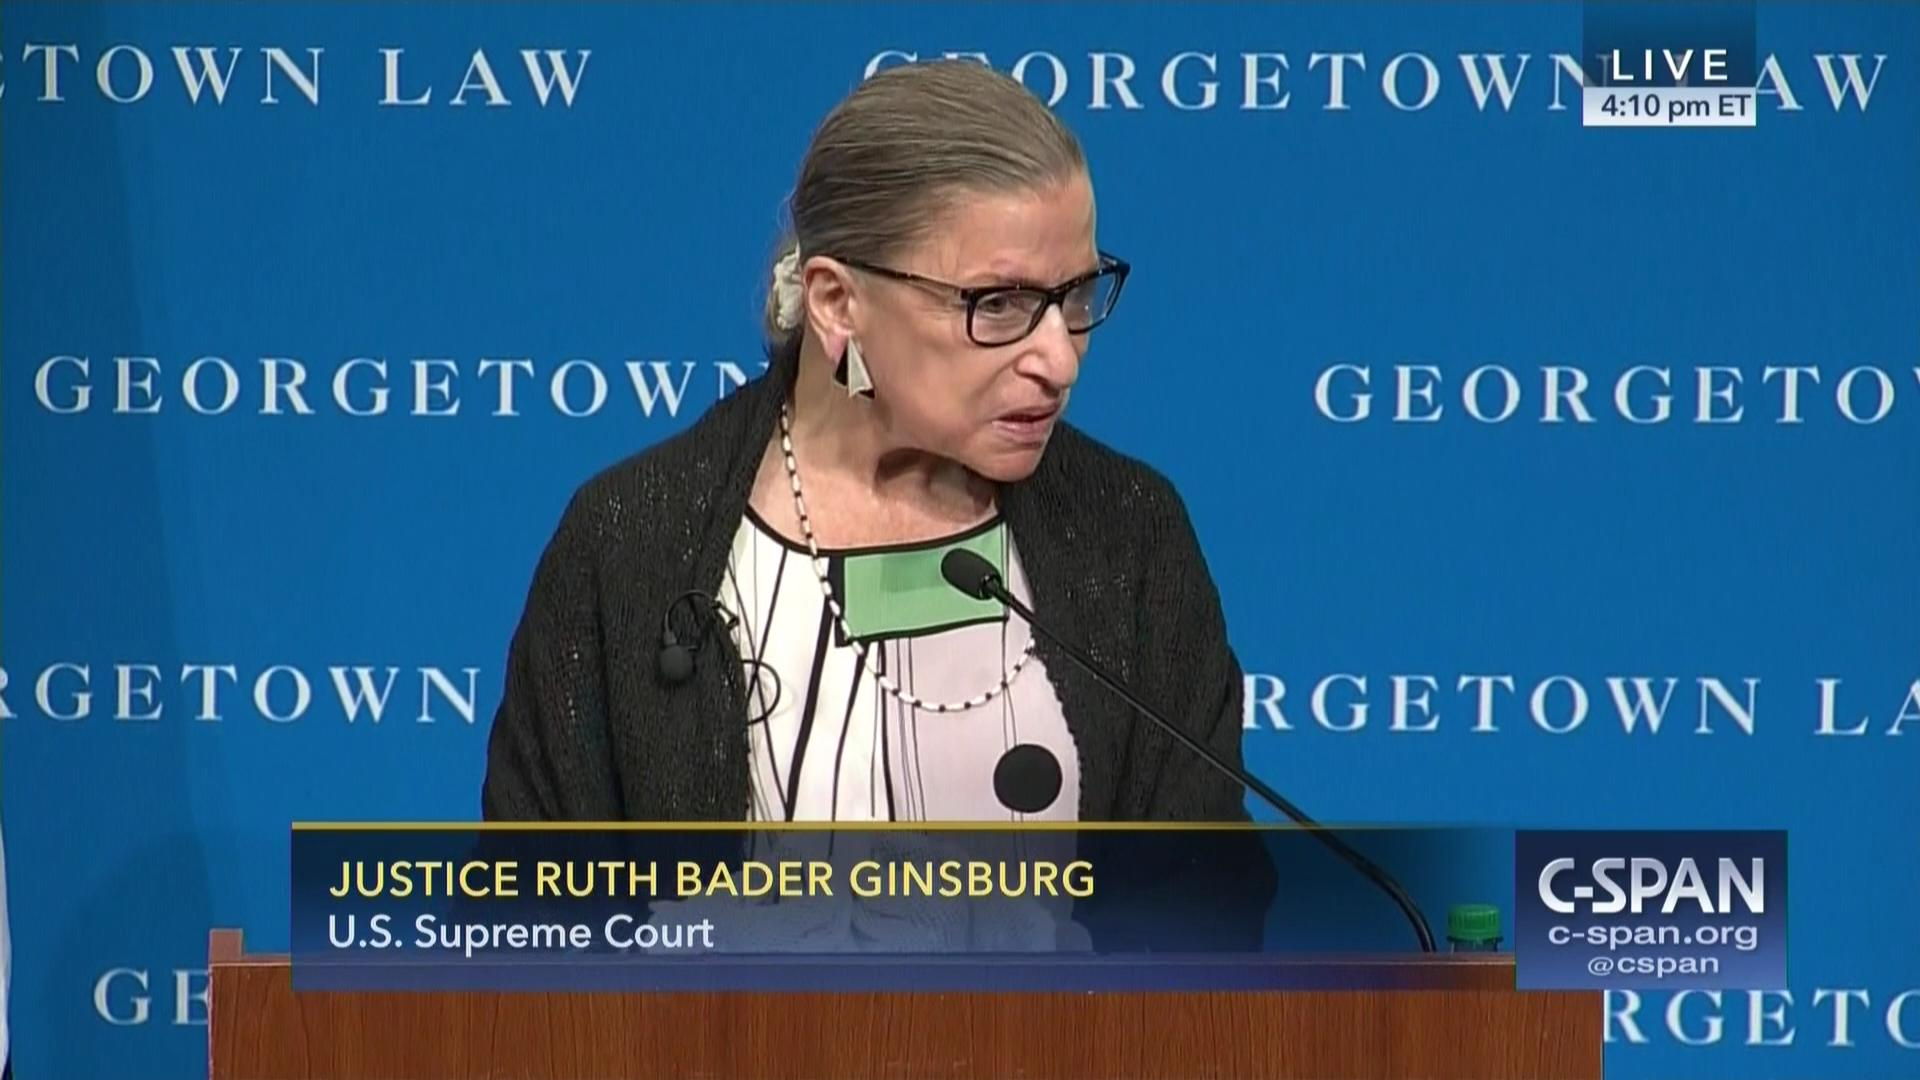 Justice Ruth Bader Ginsburg Addresses Georgetown Law Students, Sep 20 2017